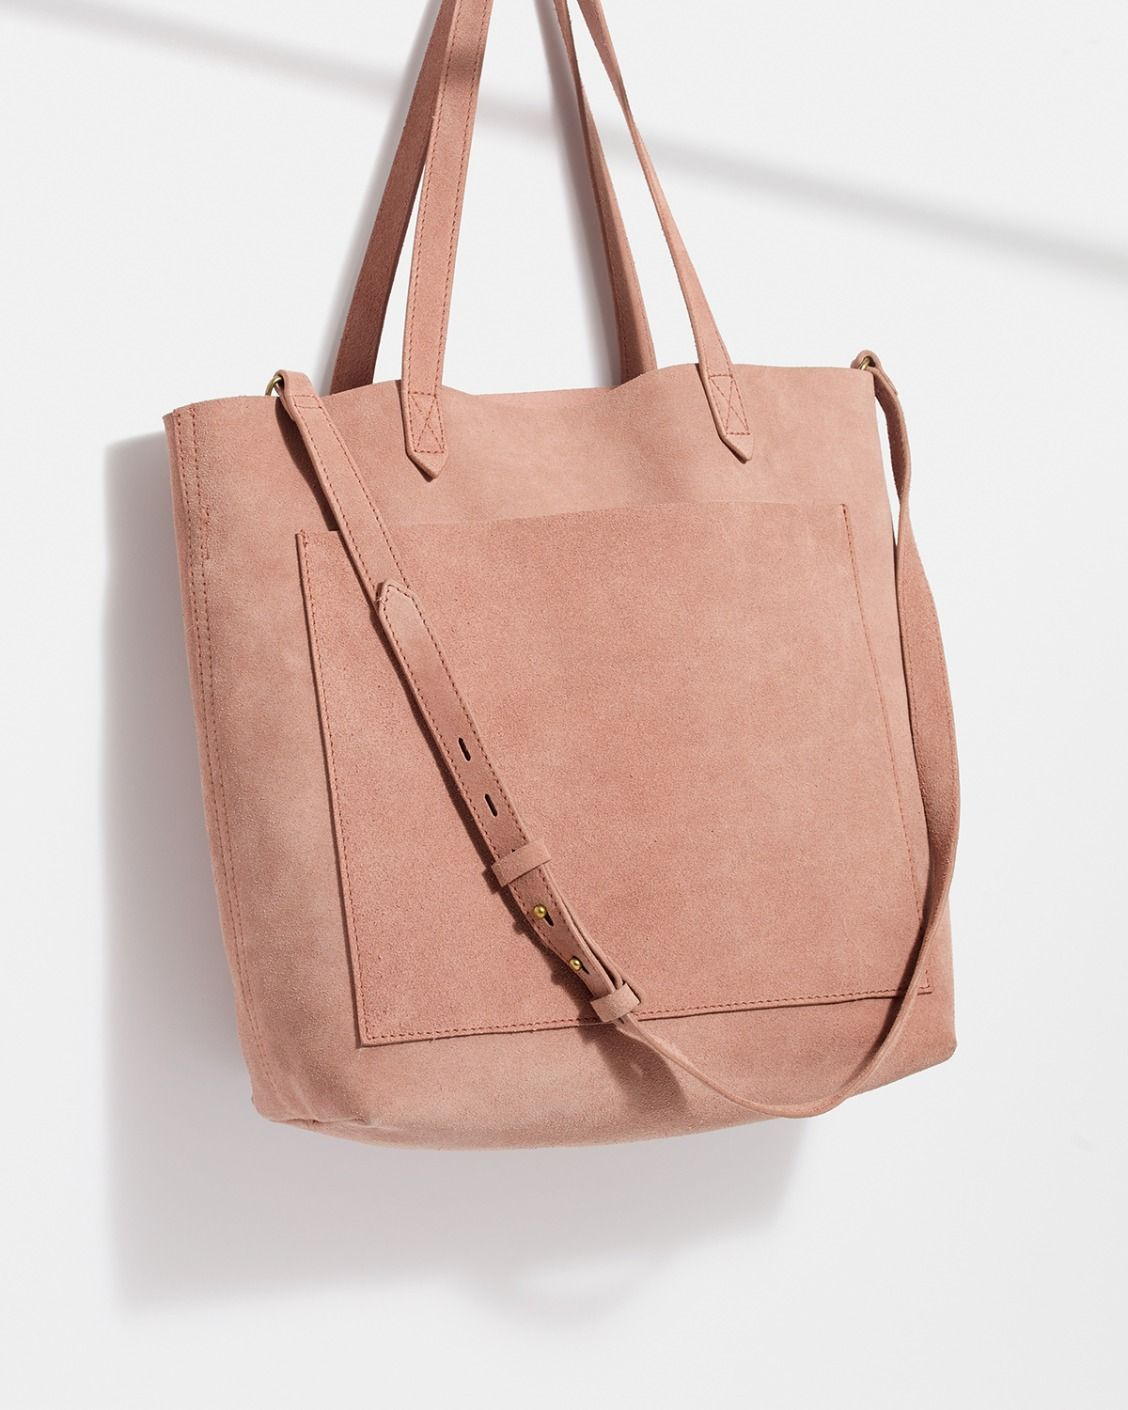 36f7ff295591 madewell medium transport tote. get this + more in the one-stop accessories  shop. #totewell